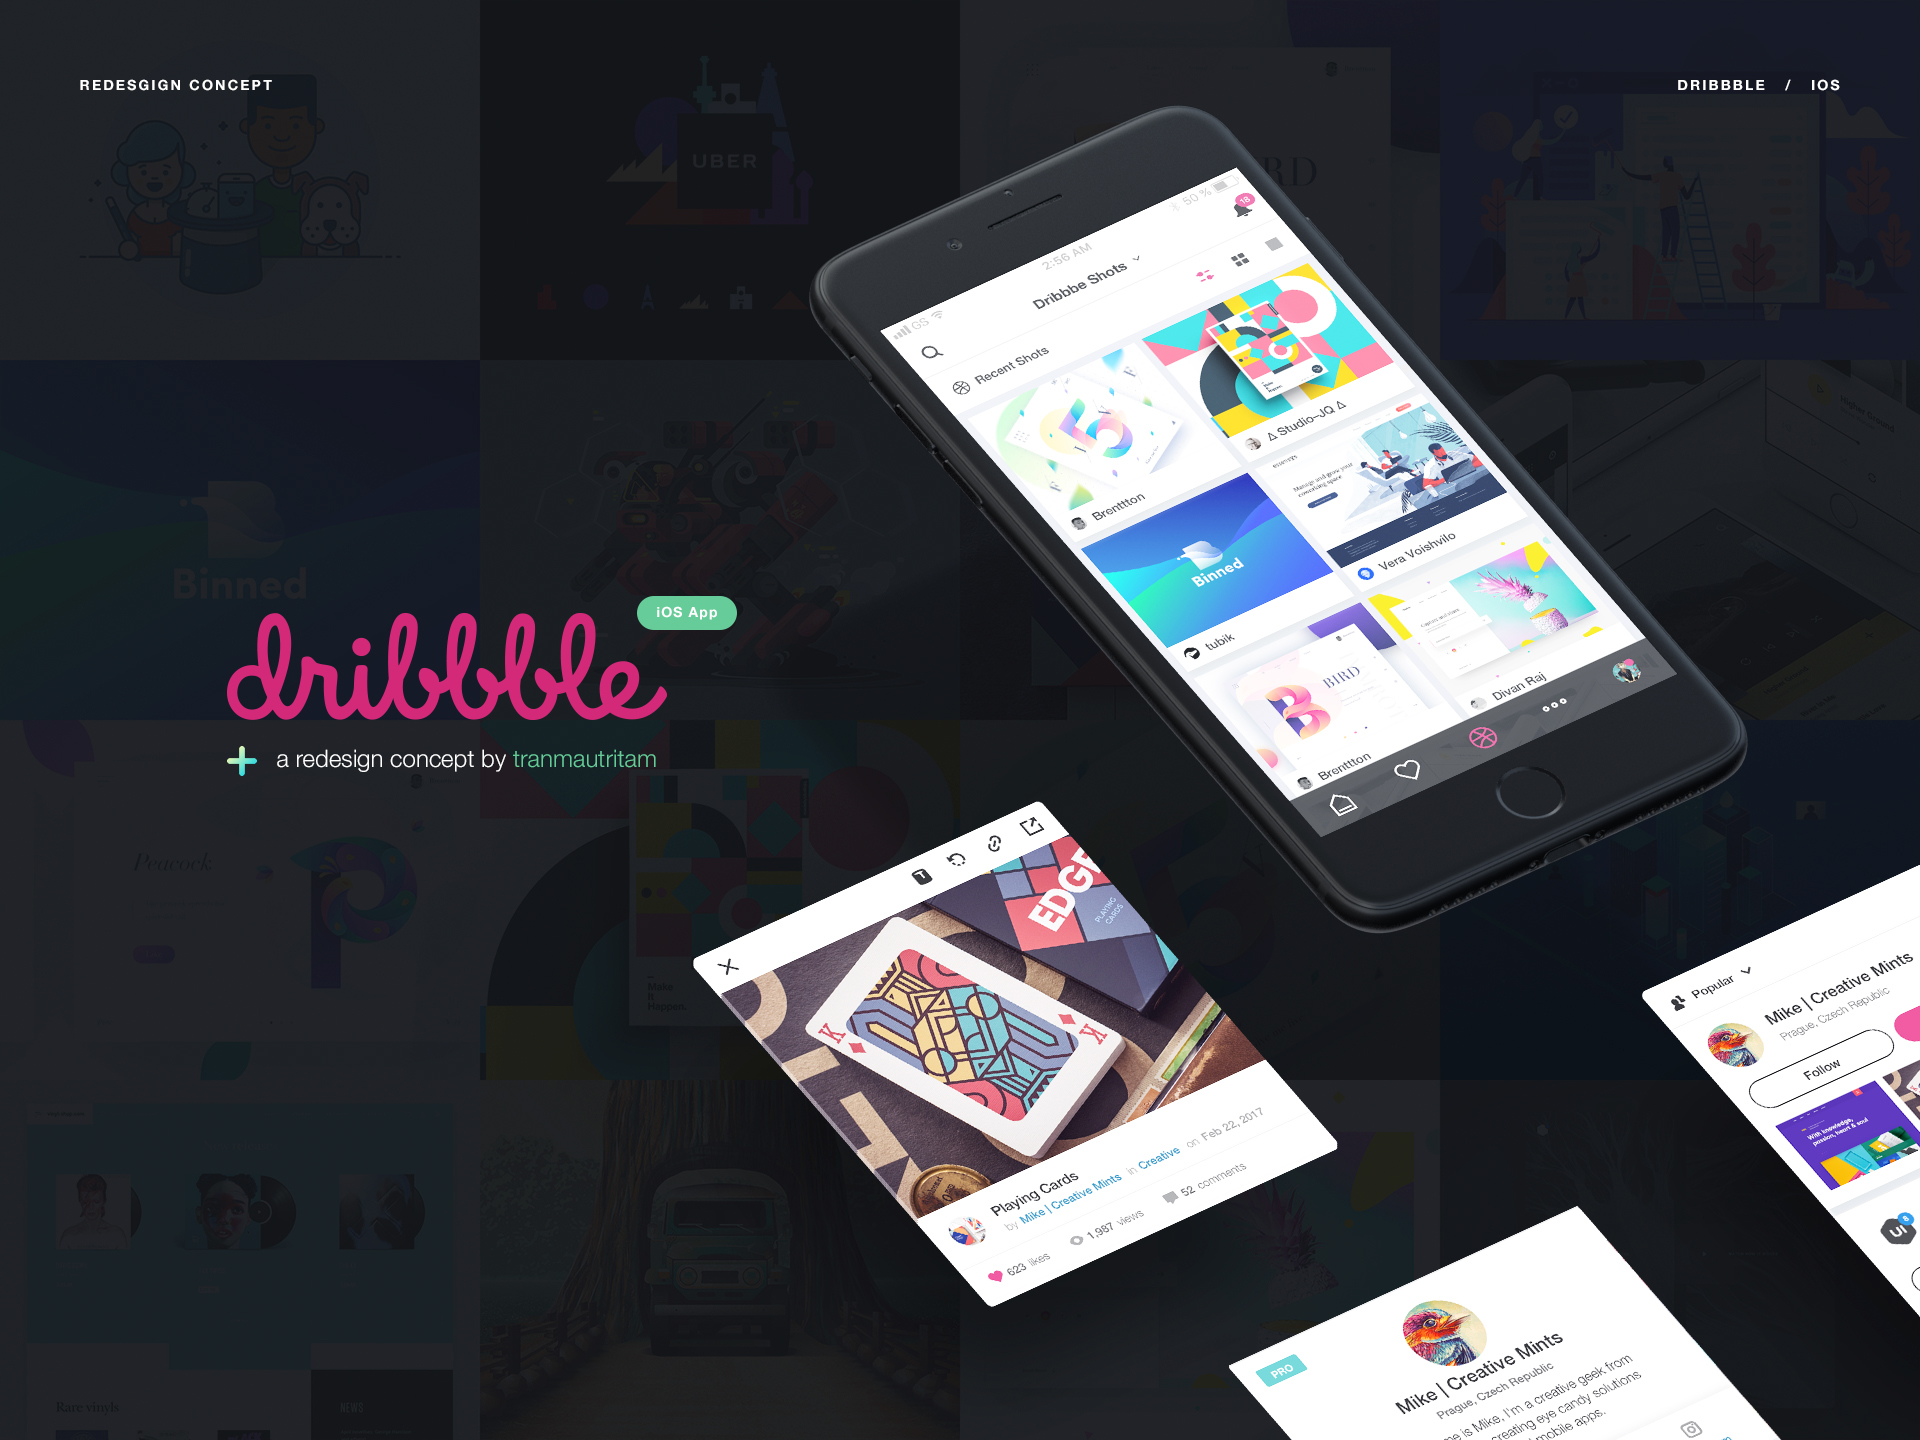 Interaction Design & iOS Design: Dribbble Redesign Concept